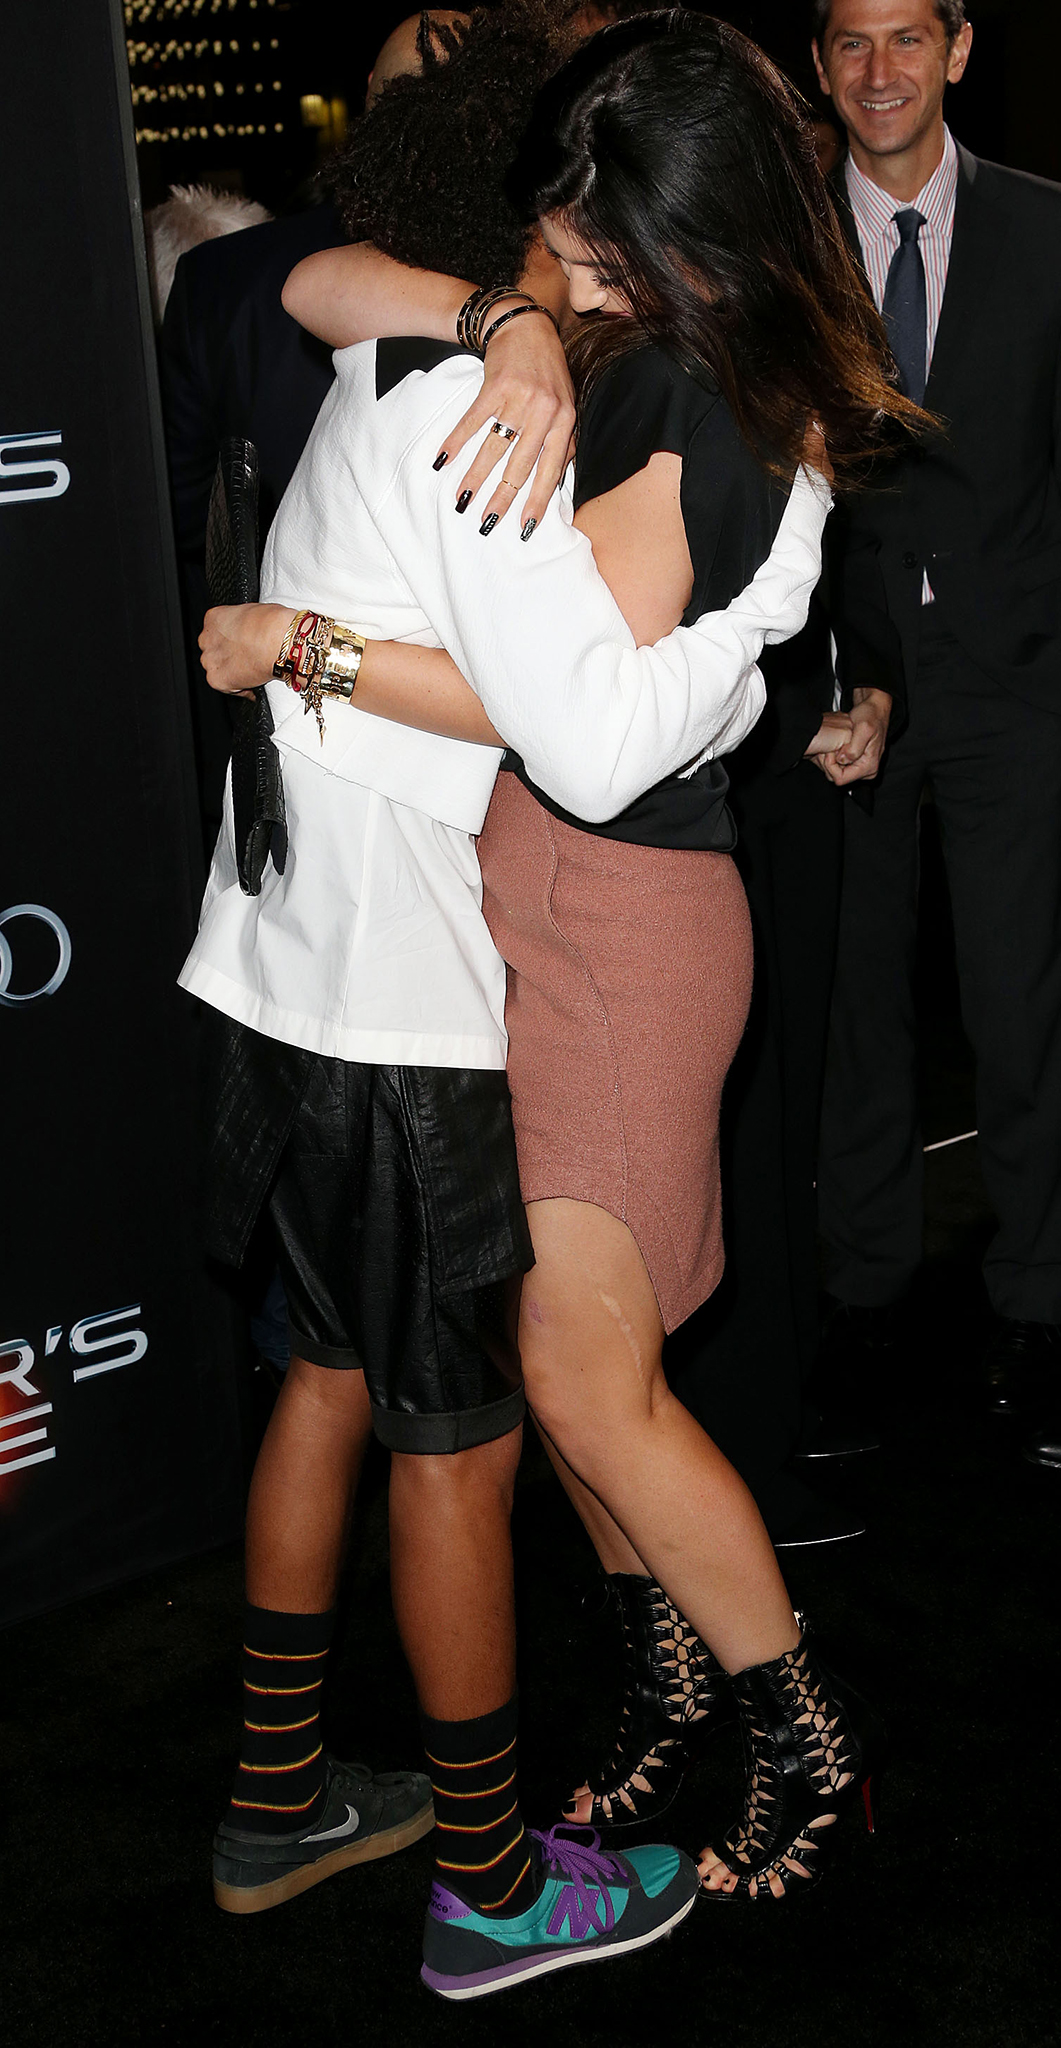 Smith and Jenner hug it out at the 'Ender's Game' premiere (Getty Images)